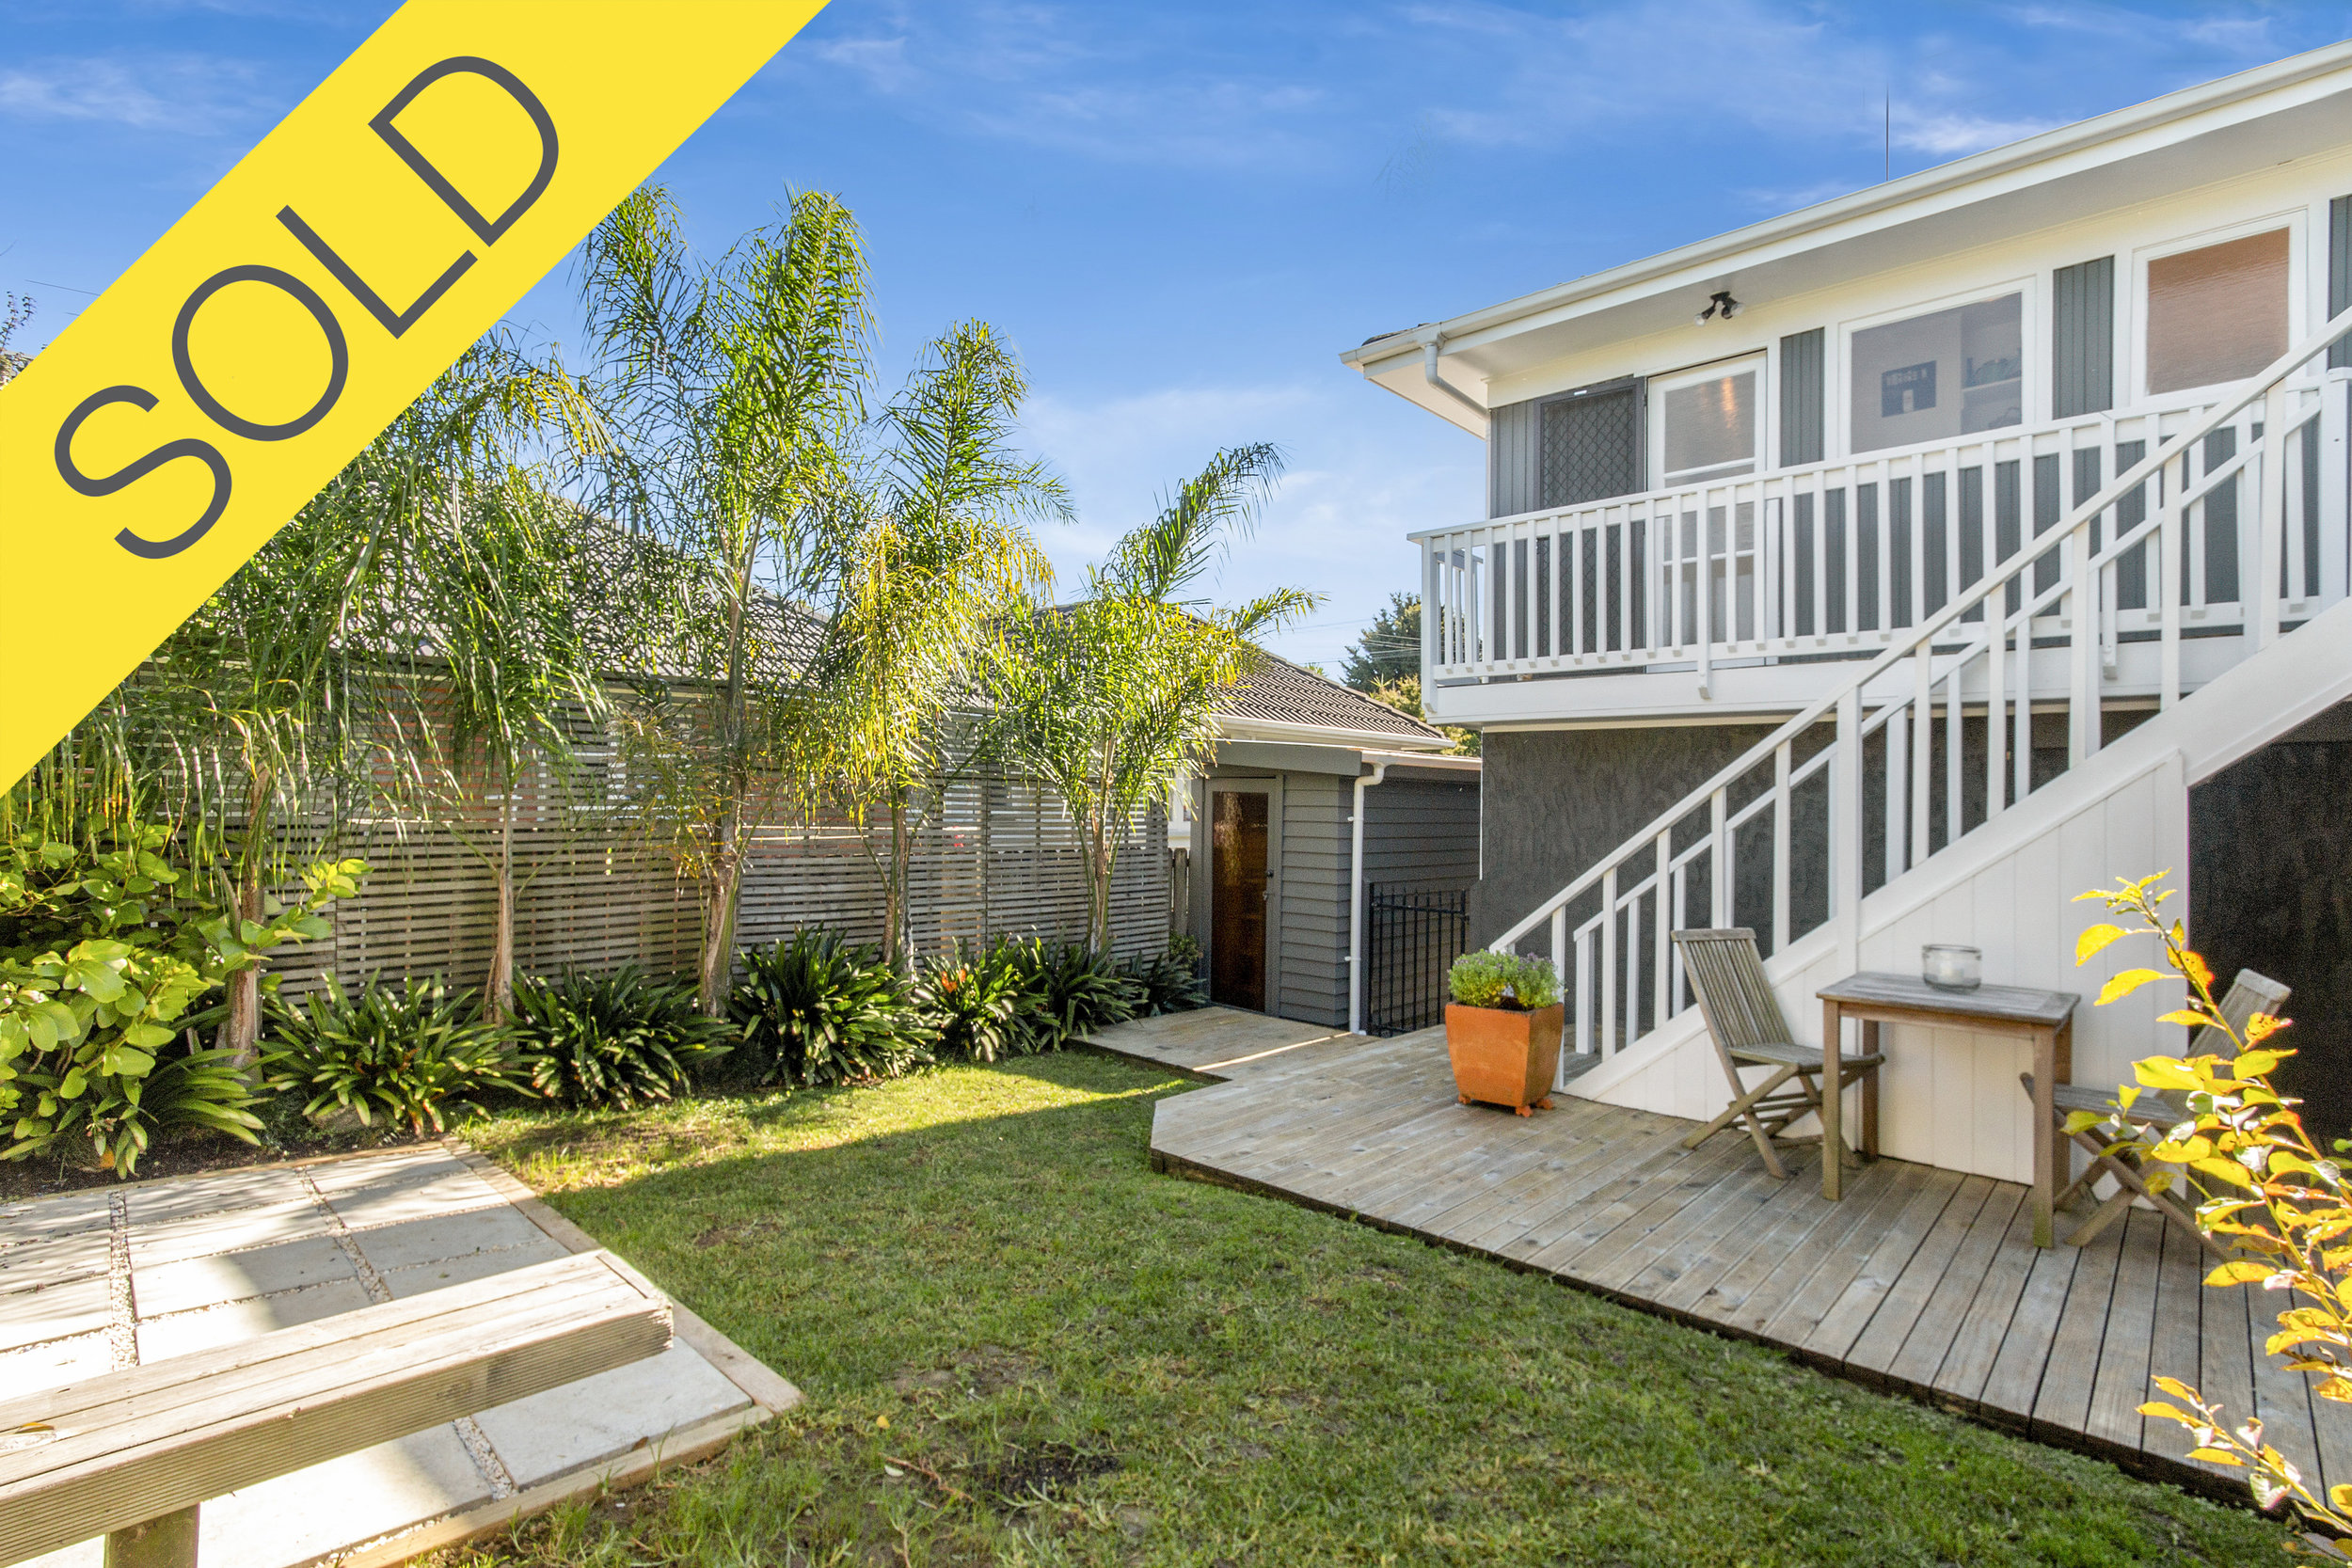 3/217 Mount Smart Road, Onehunga, Auckland - SOLD MAY 20182 Beds | 1 Bath | 2 Parking